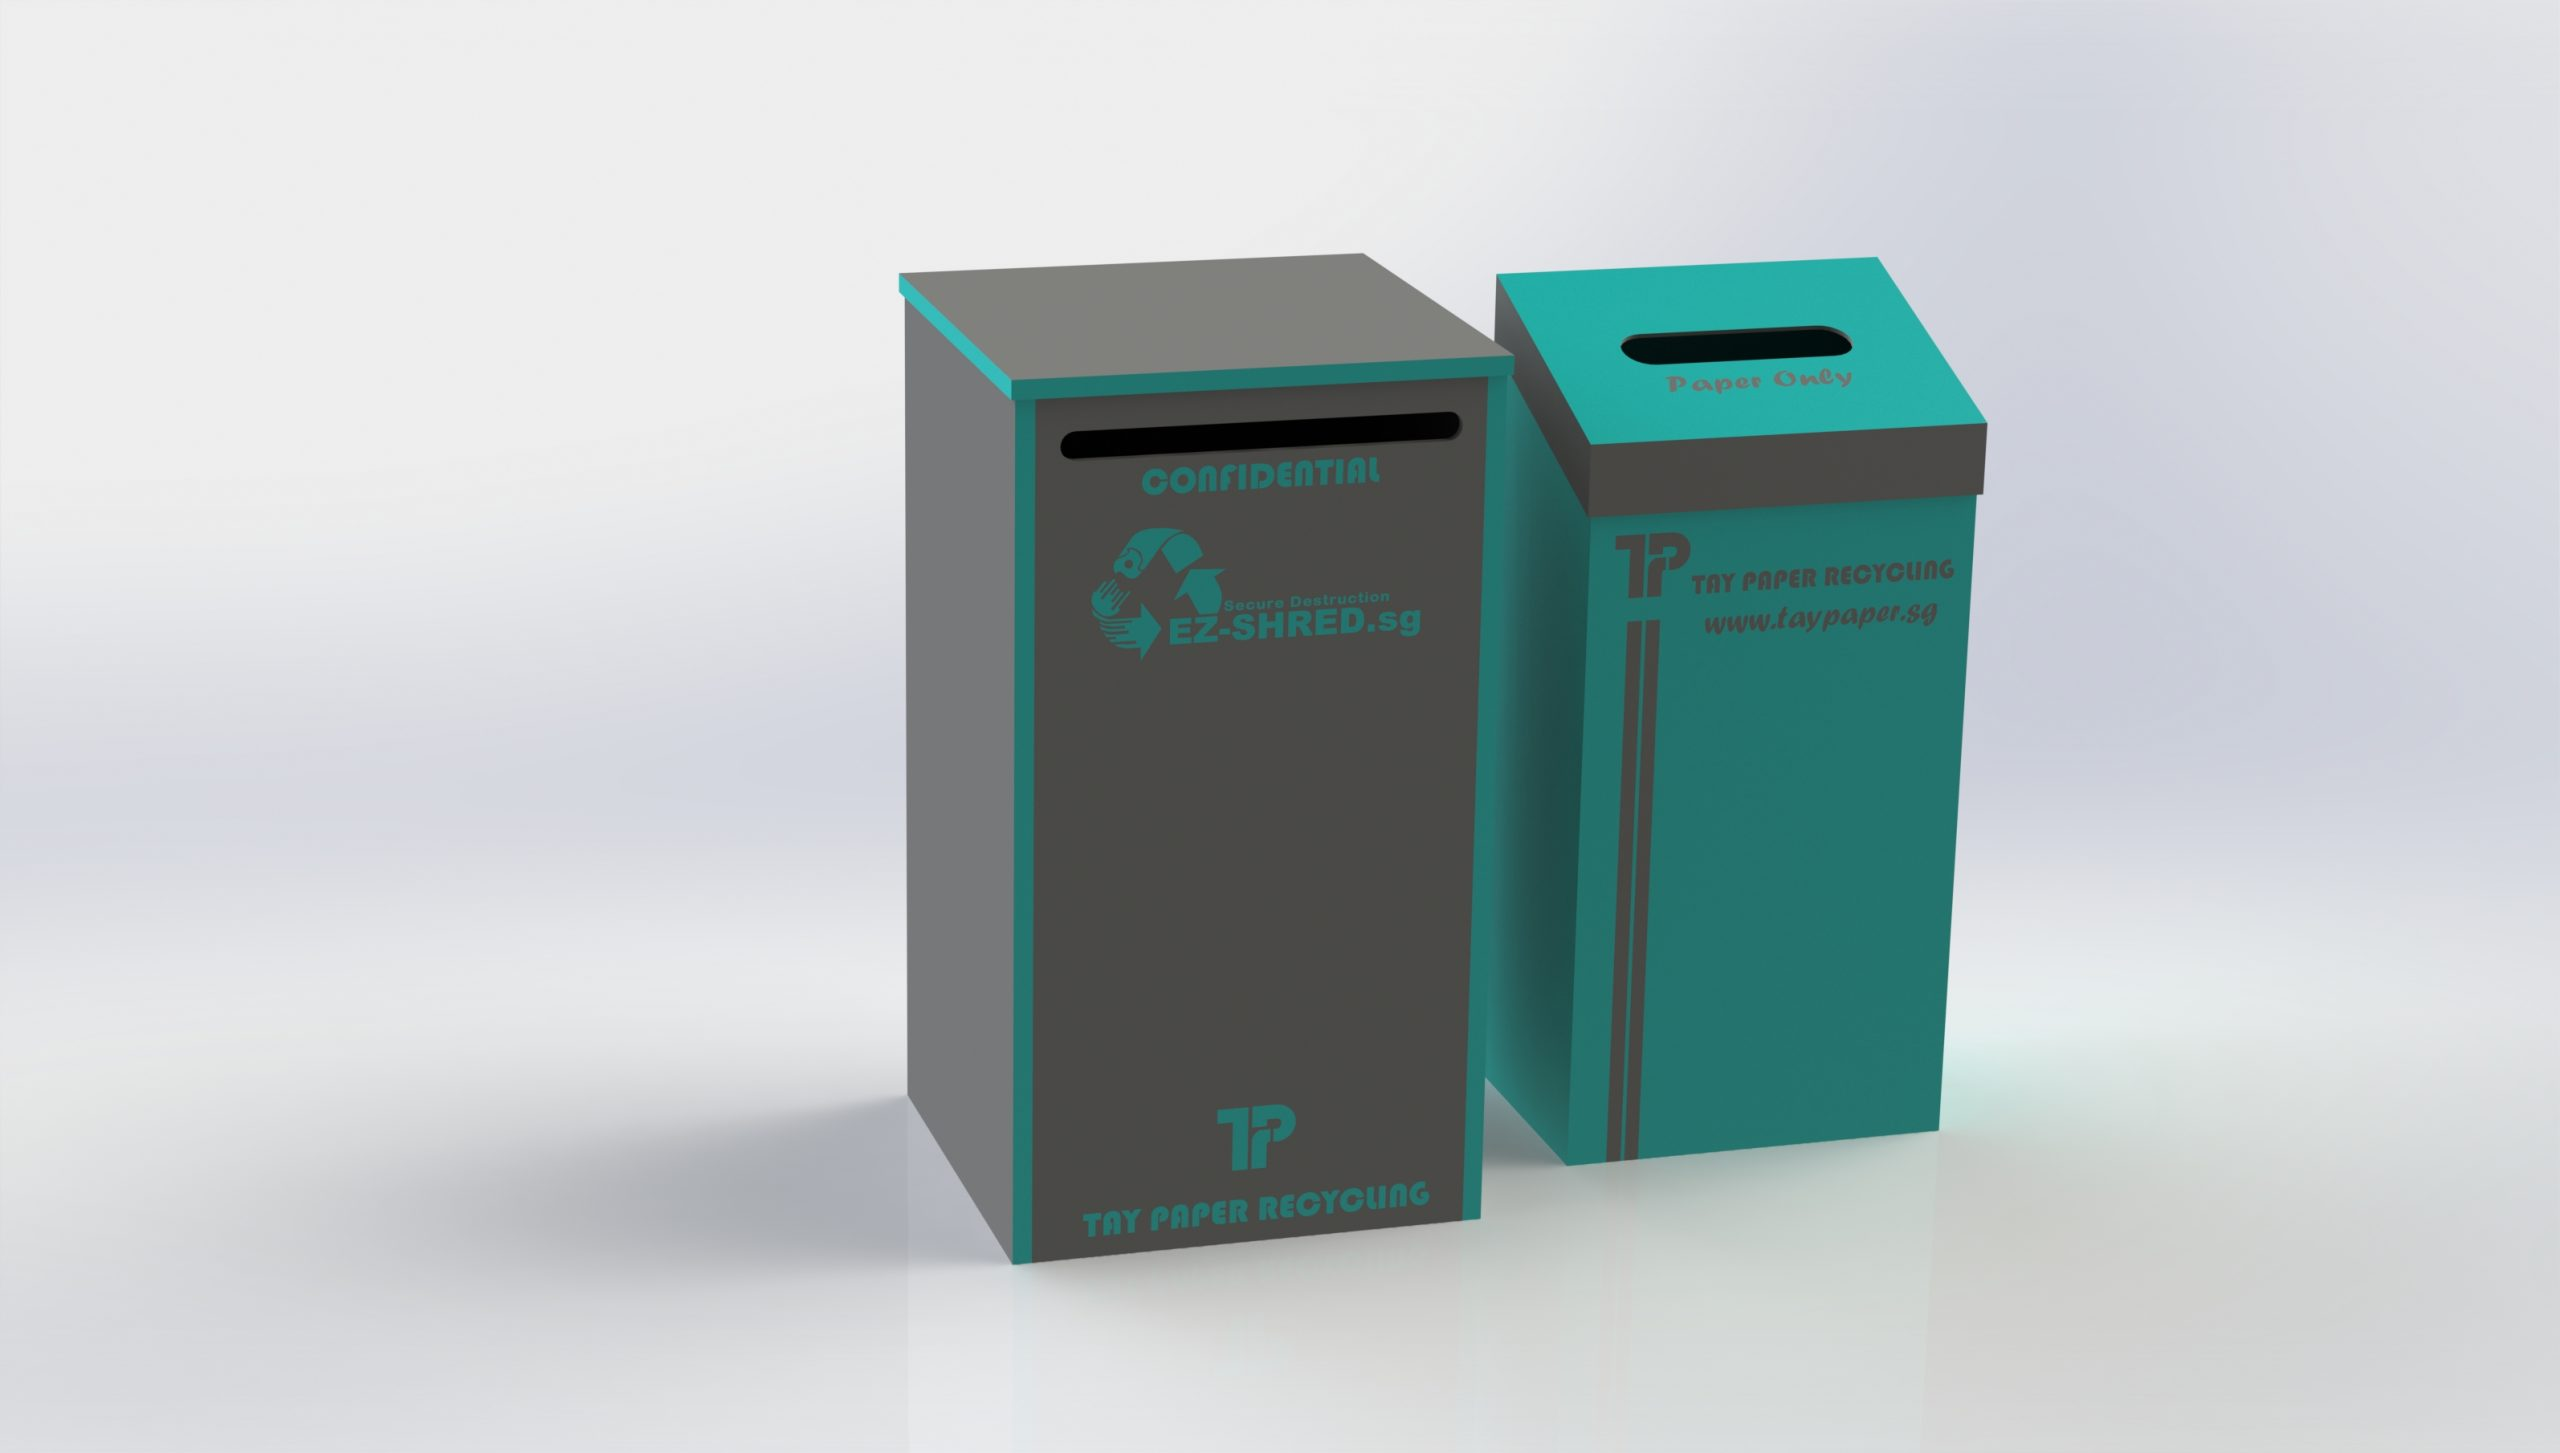 tay paper recycling's grey lockable console on the left and teal coloured paper recycle bin on the right